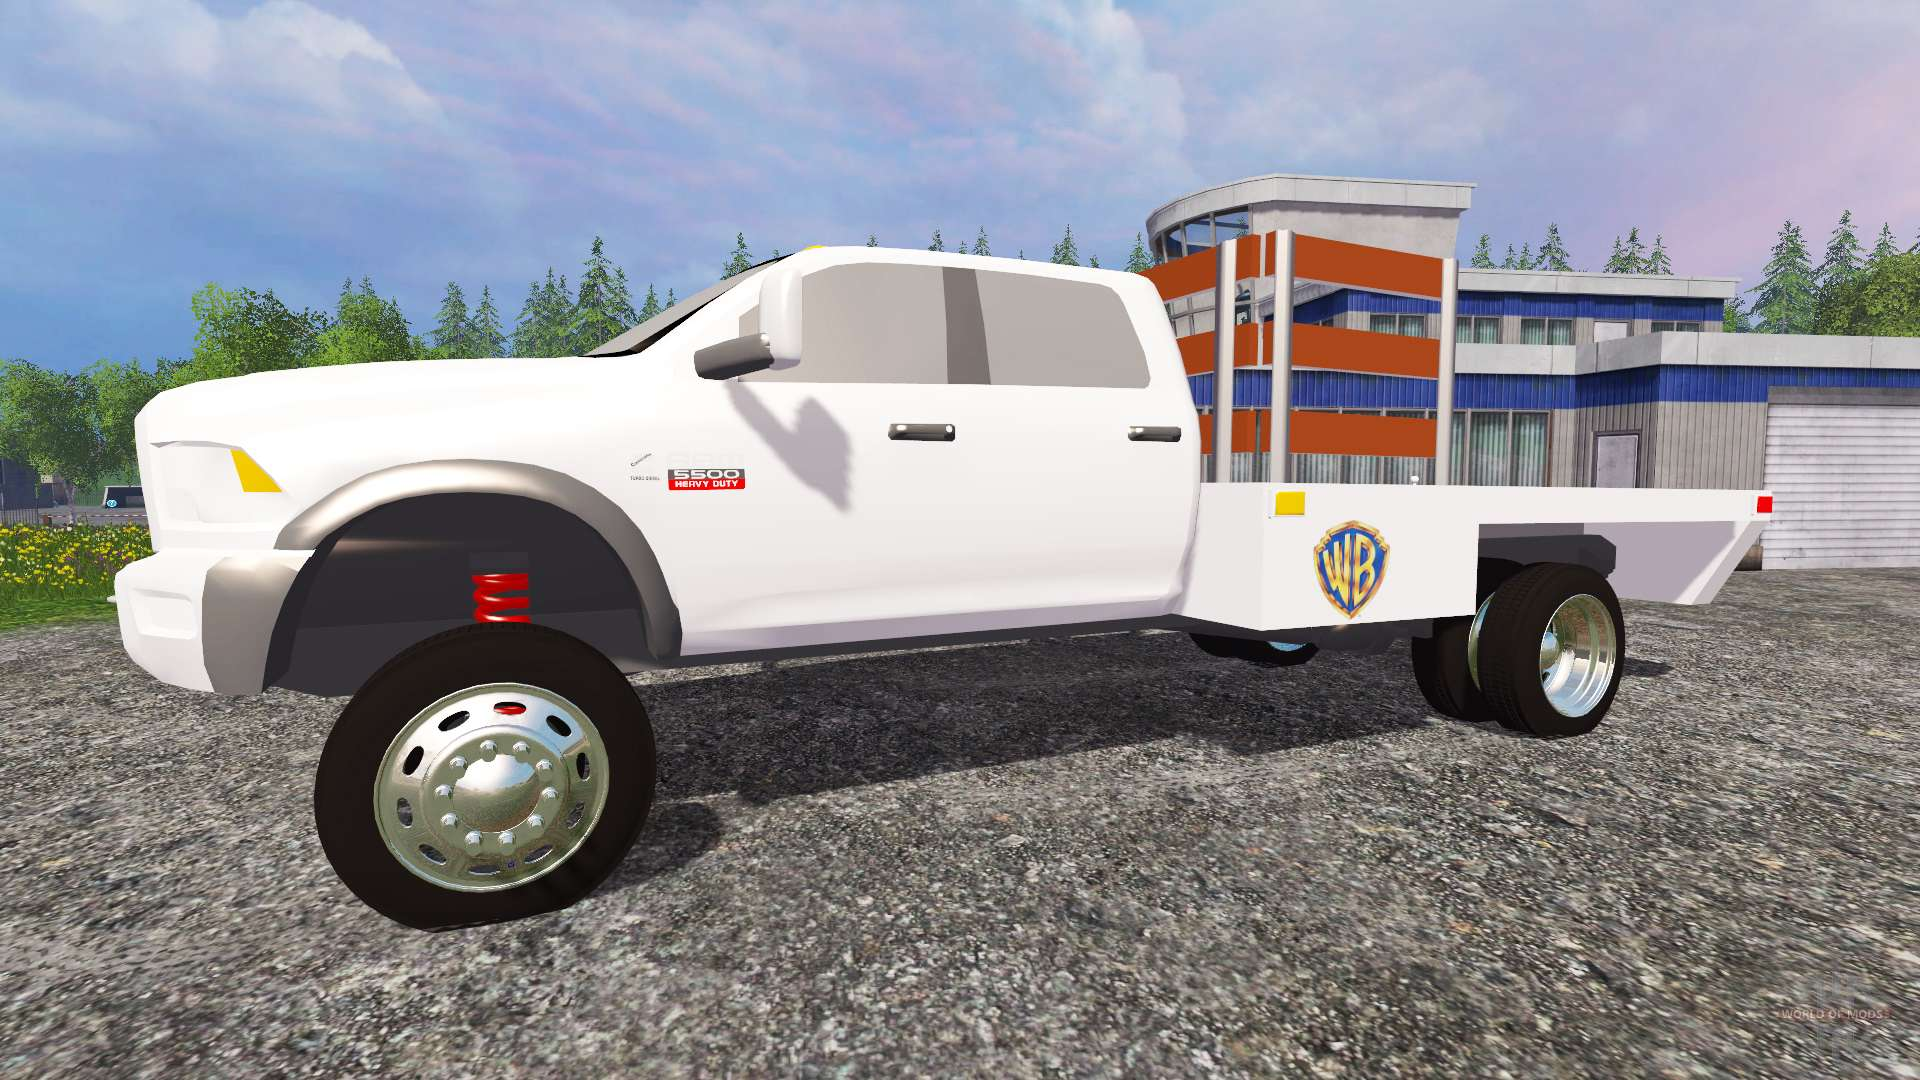 Dodge ram 5500 2015 stake truck for farming simulator 2015 for 5500 3